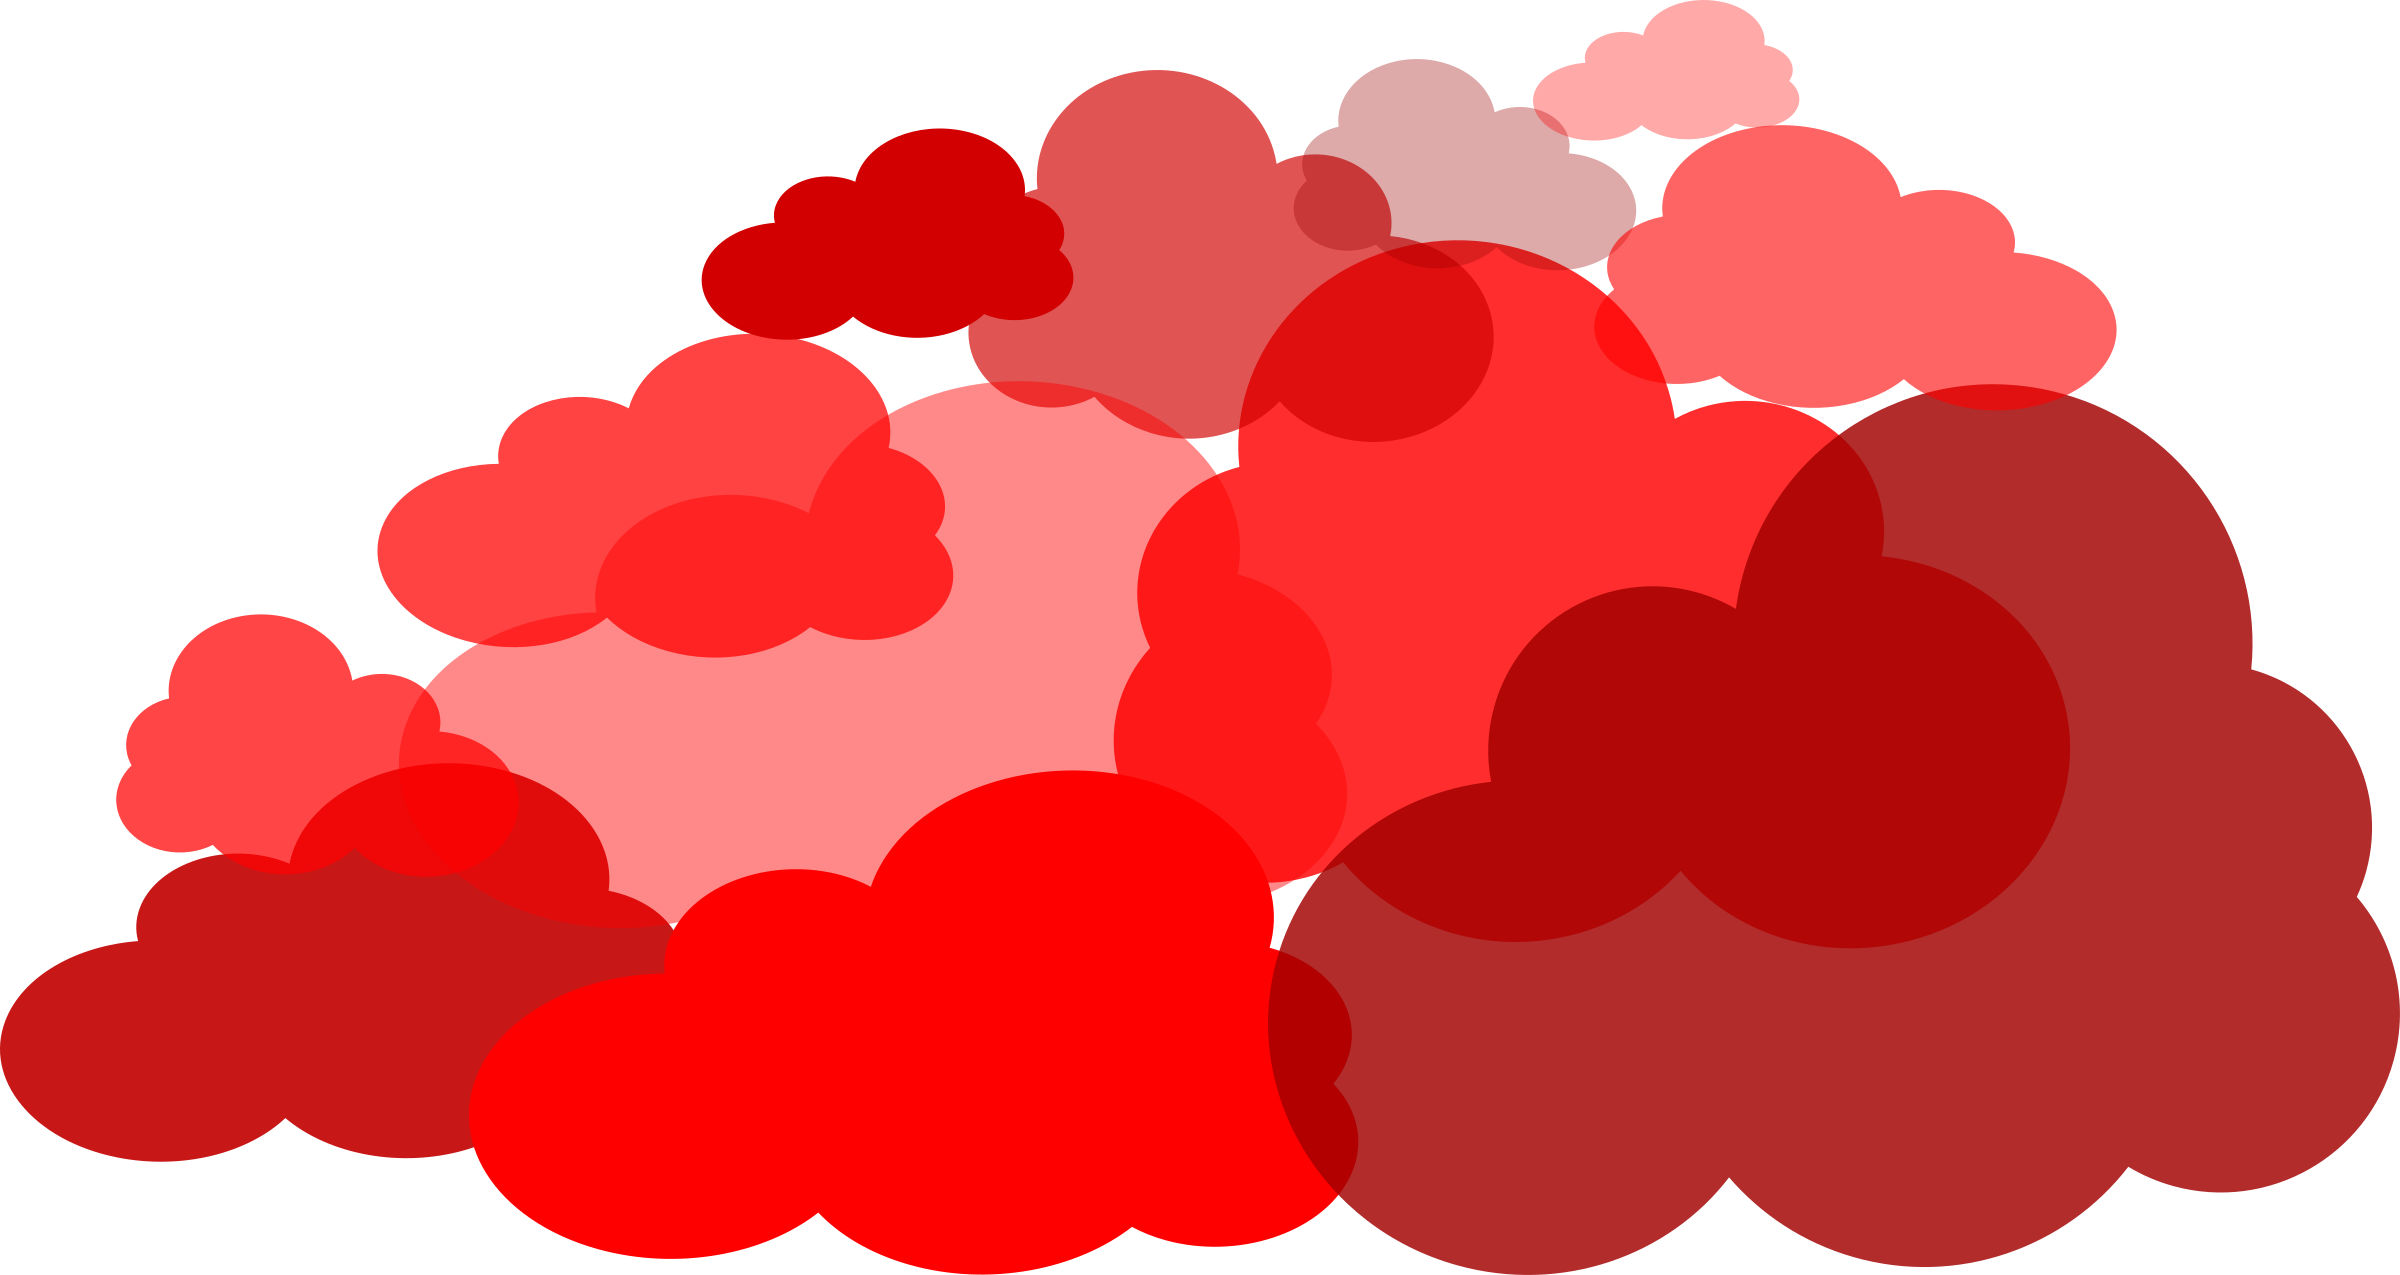 Red Cloud clipart #13